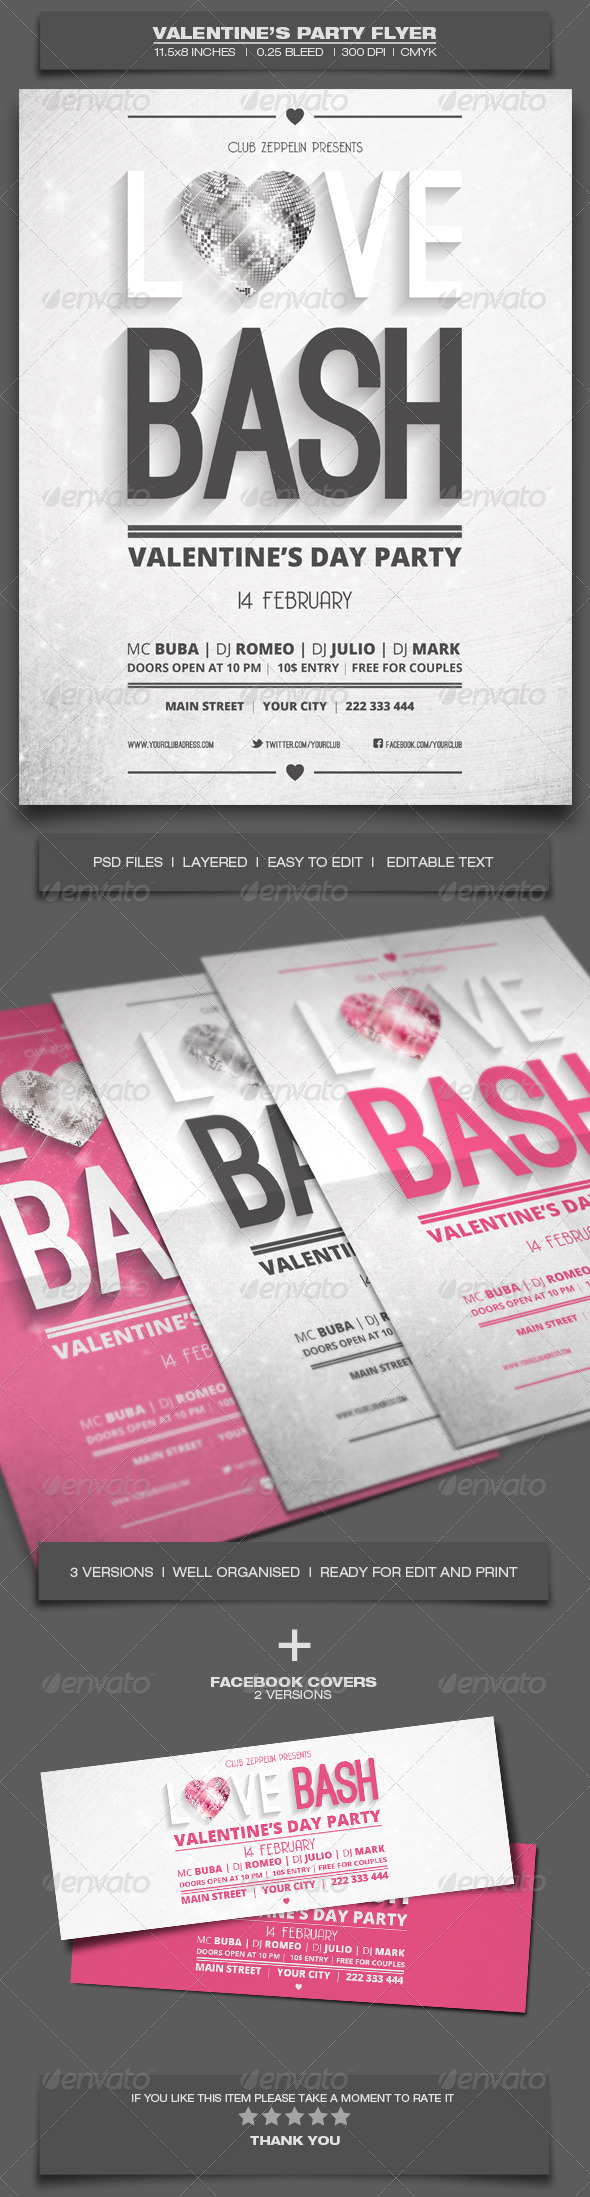 Valentine's Day Party - Event Flyer Template 6 - Holidays Events